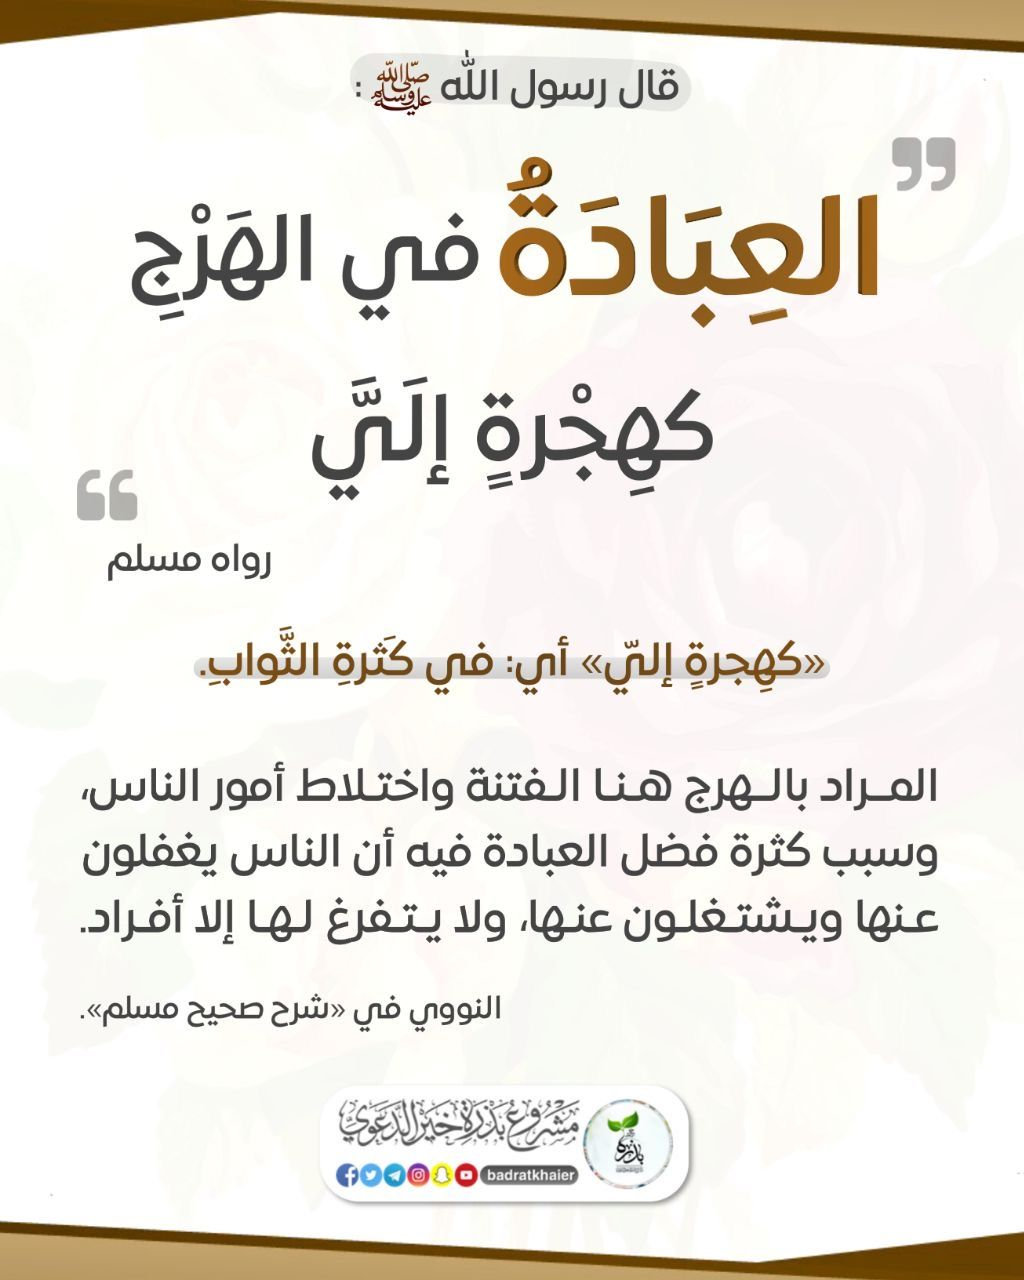 Pin By Grafi Nita On وفاء لمن فقدناهم Personalized Items Islam Person